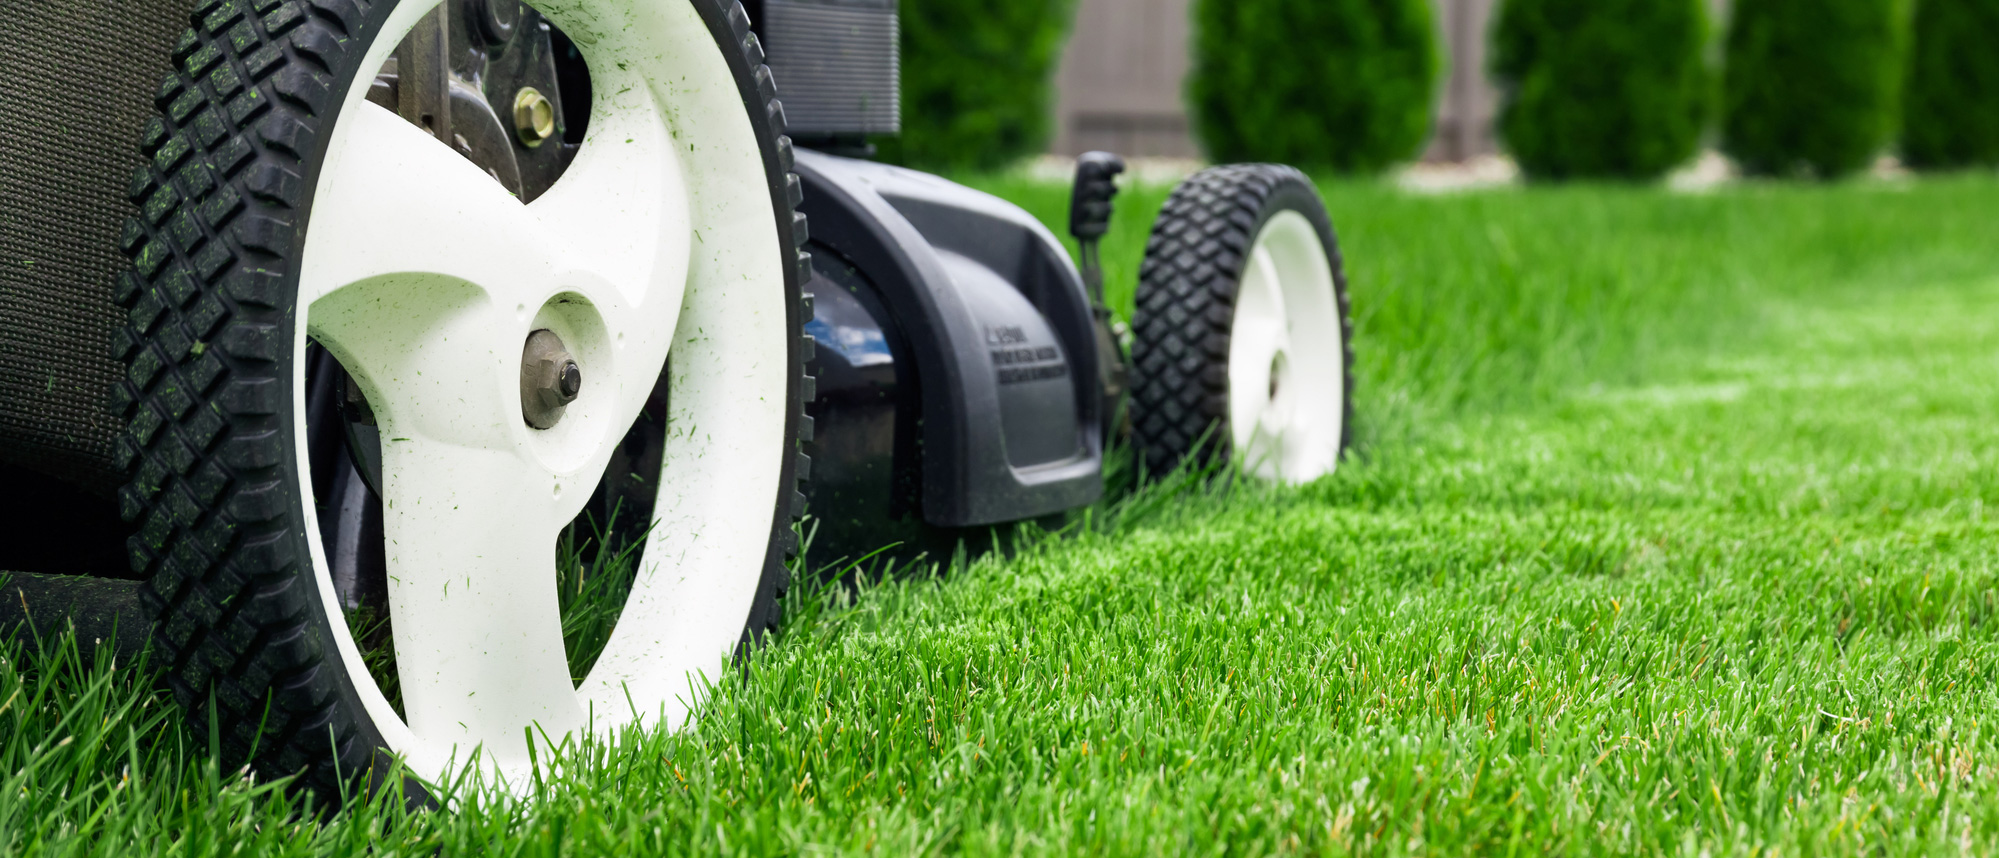 A lawnmower performing gardening and lawn care services.